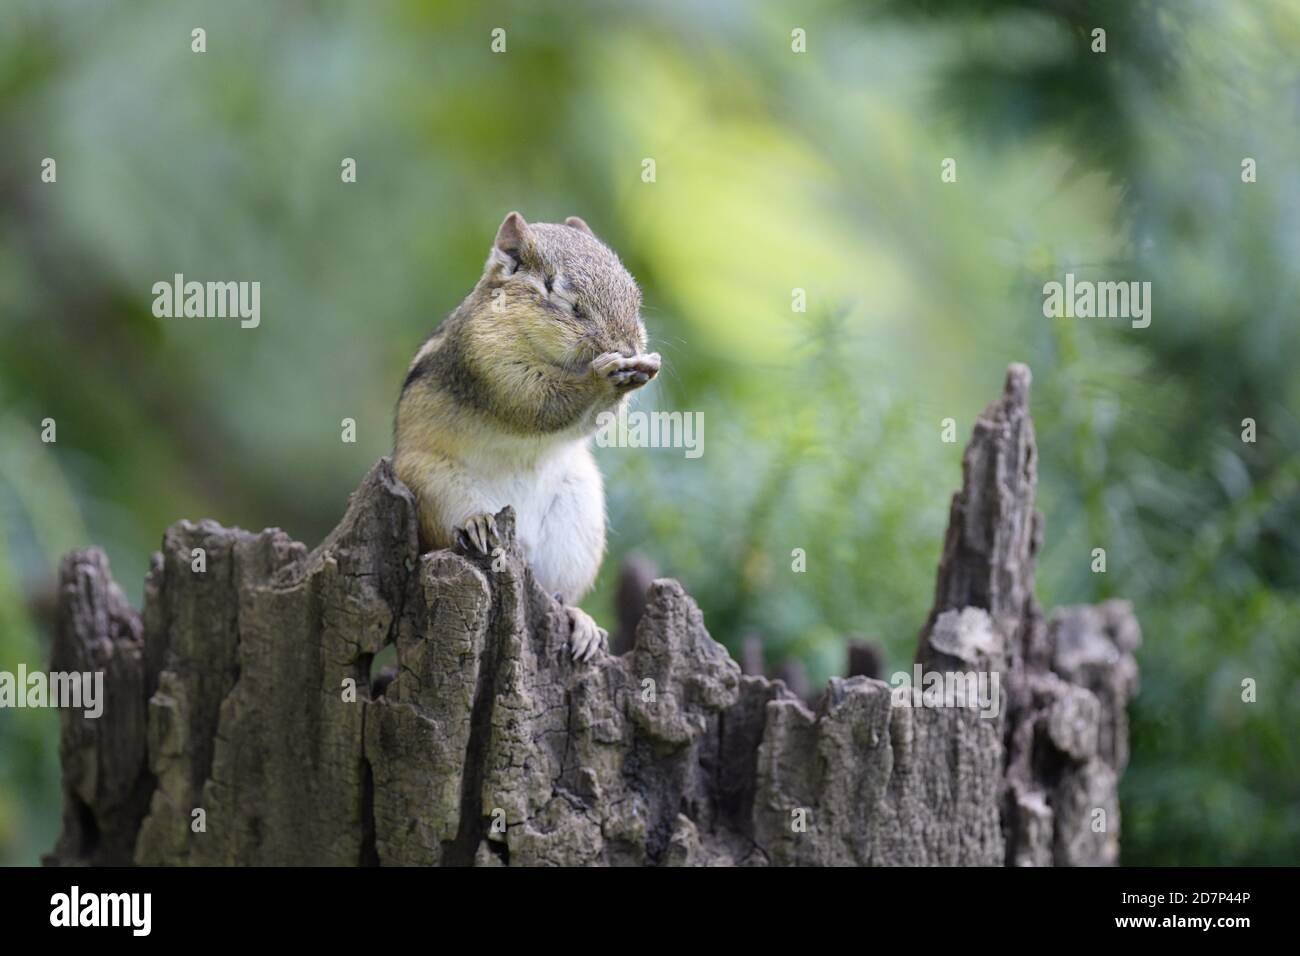 An Eastern chipmunk grooming himself on a tree trunk Stock Photo